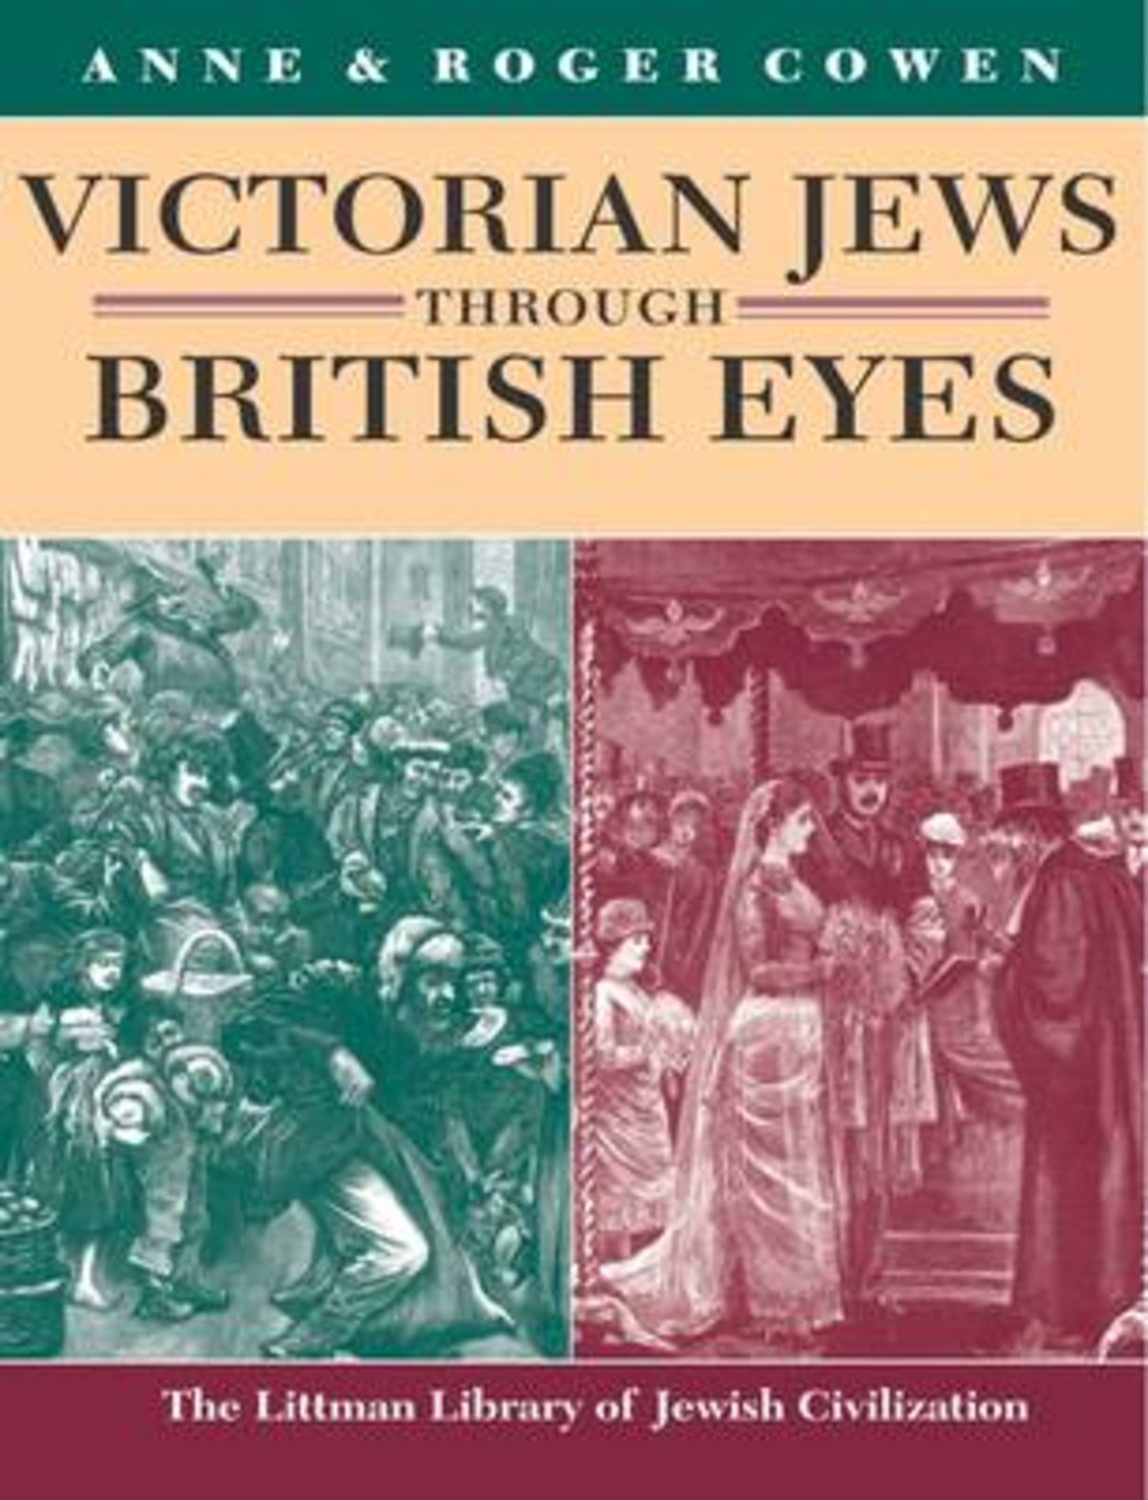 Victorian Jews Through British Eyes